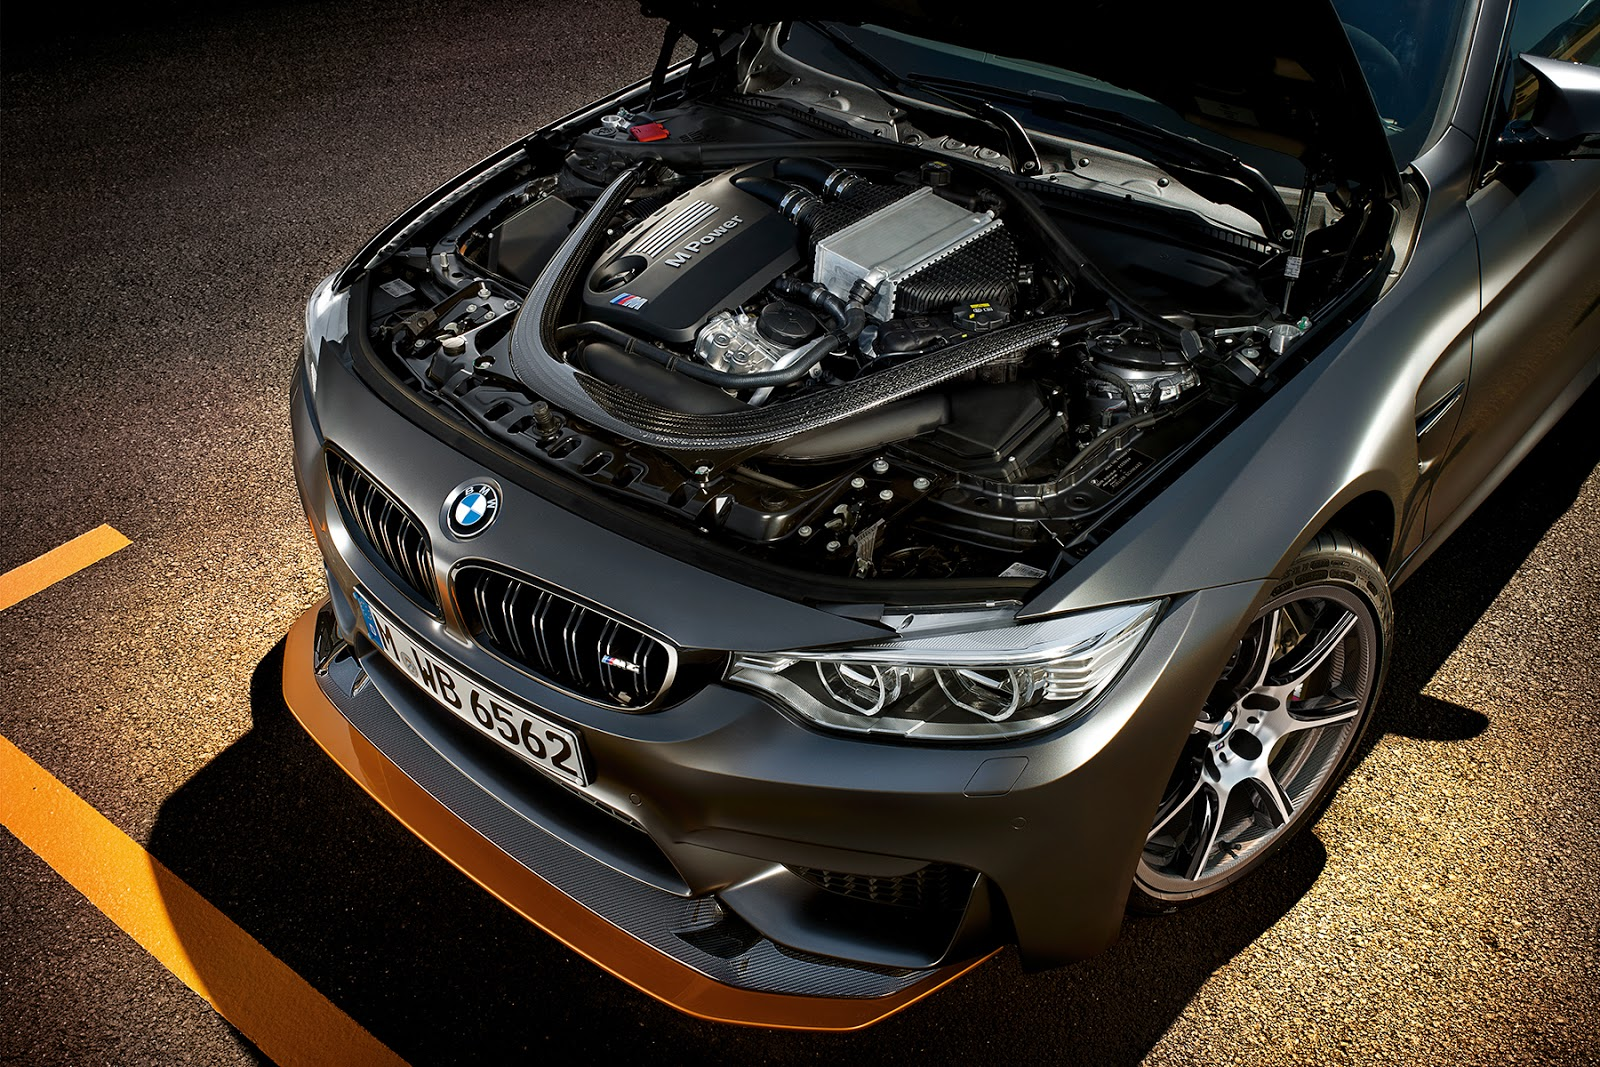 bmw 440i and 325d coming in spring carscoops. Black Bedroom Furniture Sets. Home Design Ideas